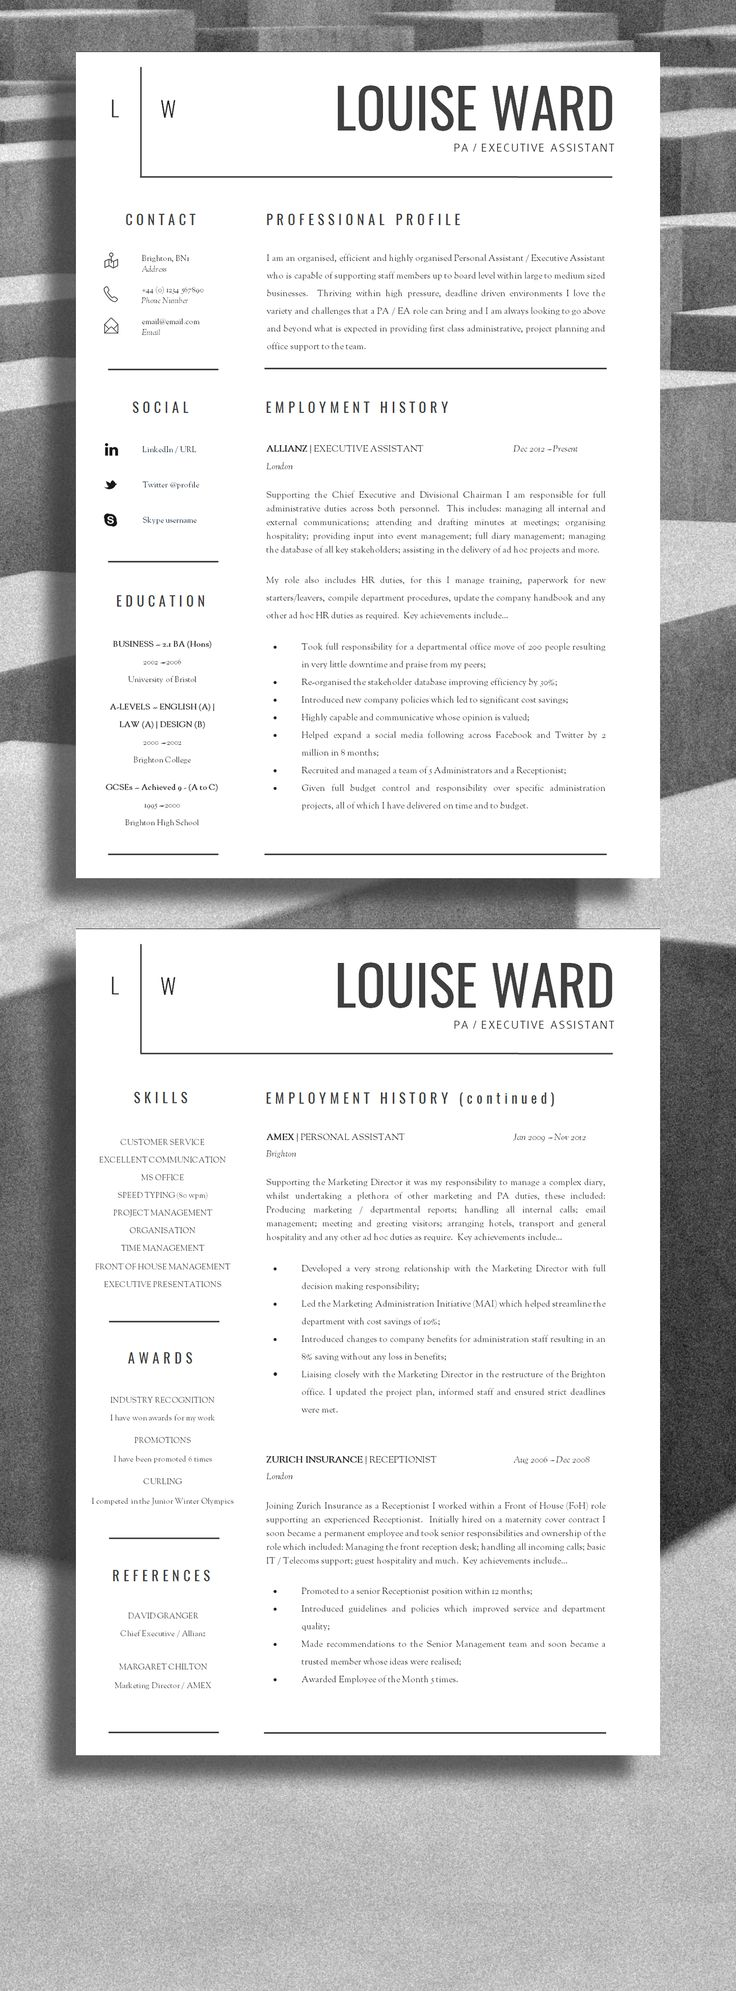 best ideas about professional resume design cv professional resume design professional cv design be professional and get more interviews career